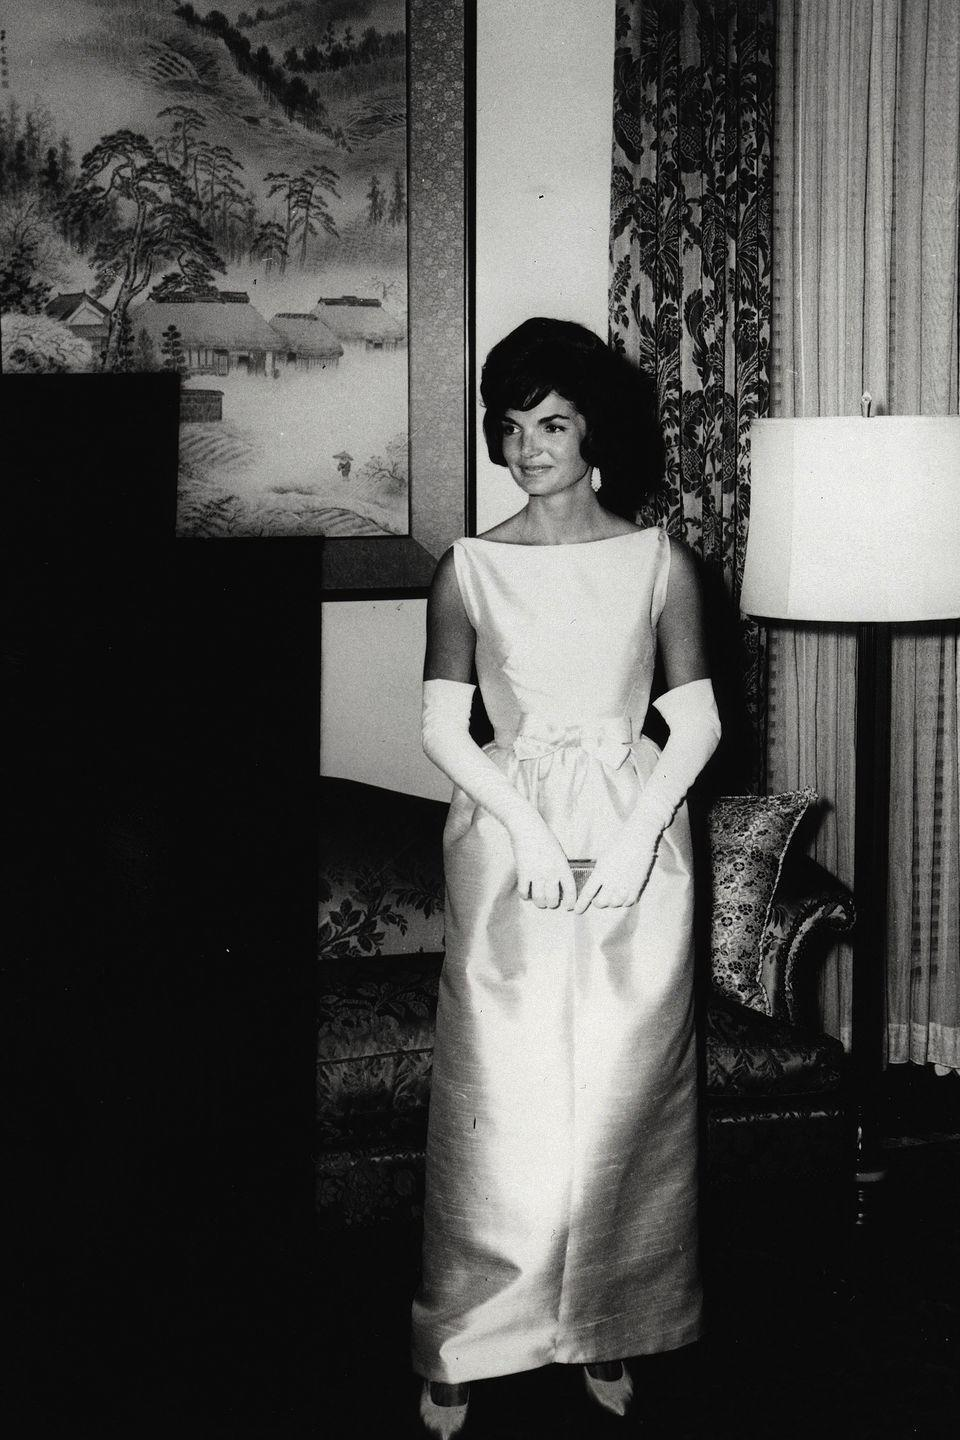 <p>Kennedy again donned gloves and a boatneck gown to attend a dinner at the Japanese Embassy in 1961. That simple bow ties up the luxe white look.</p>